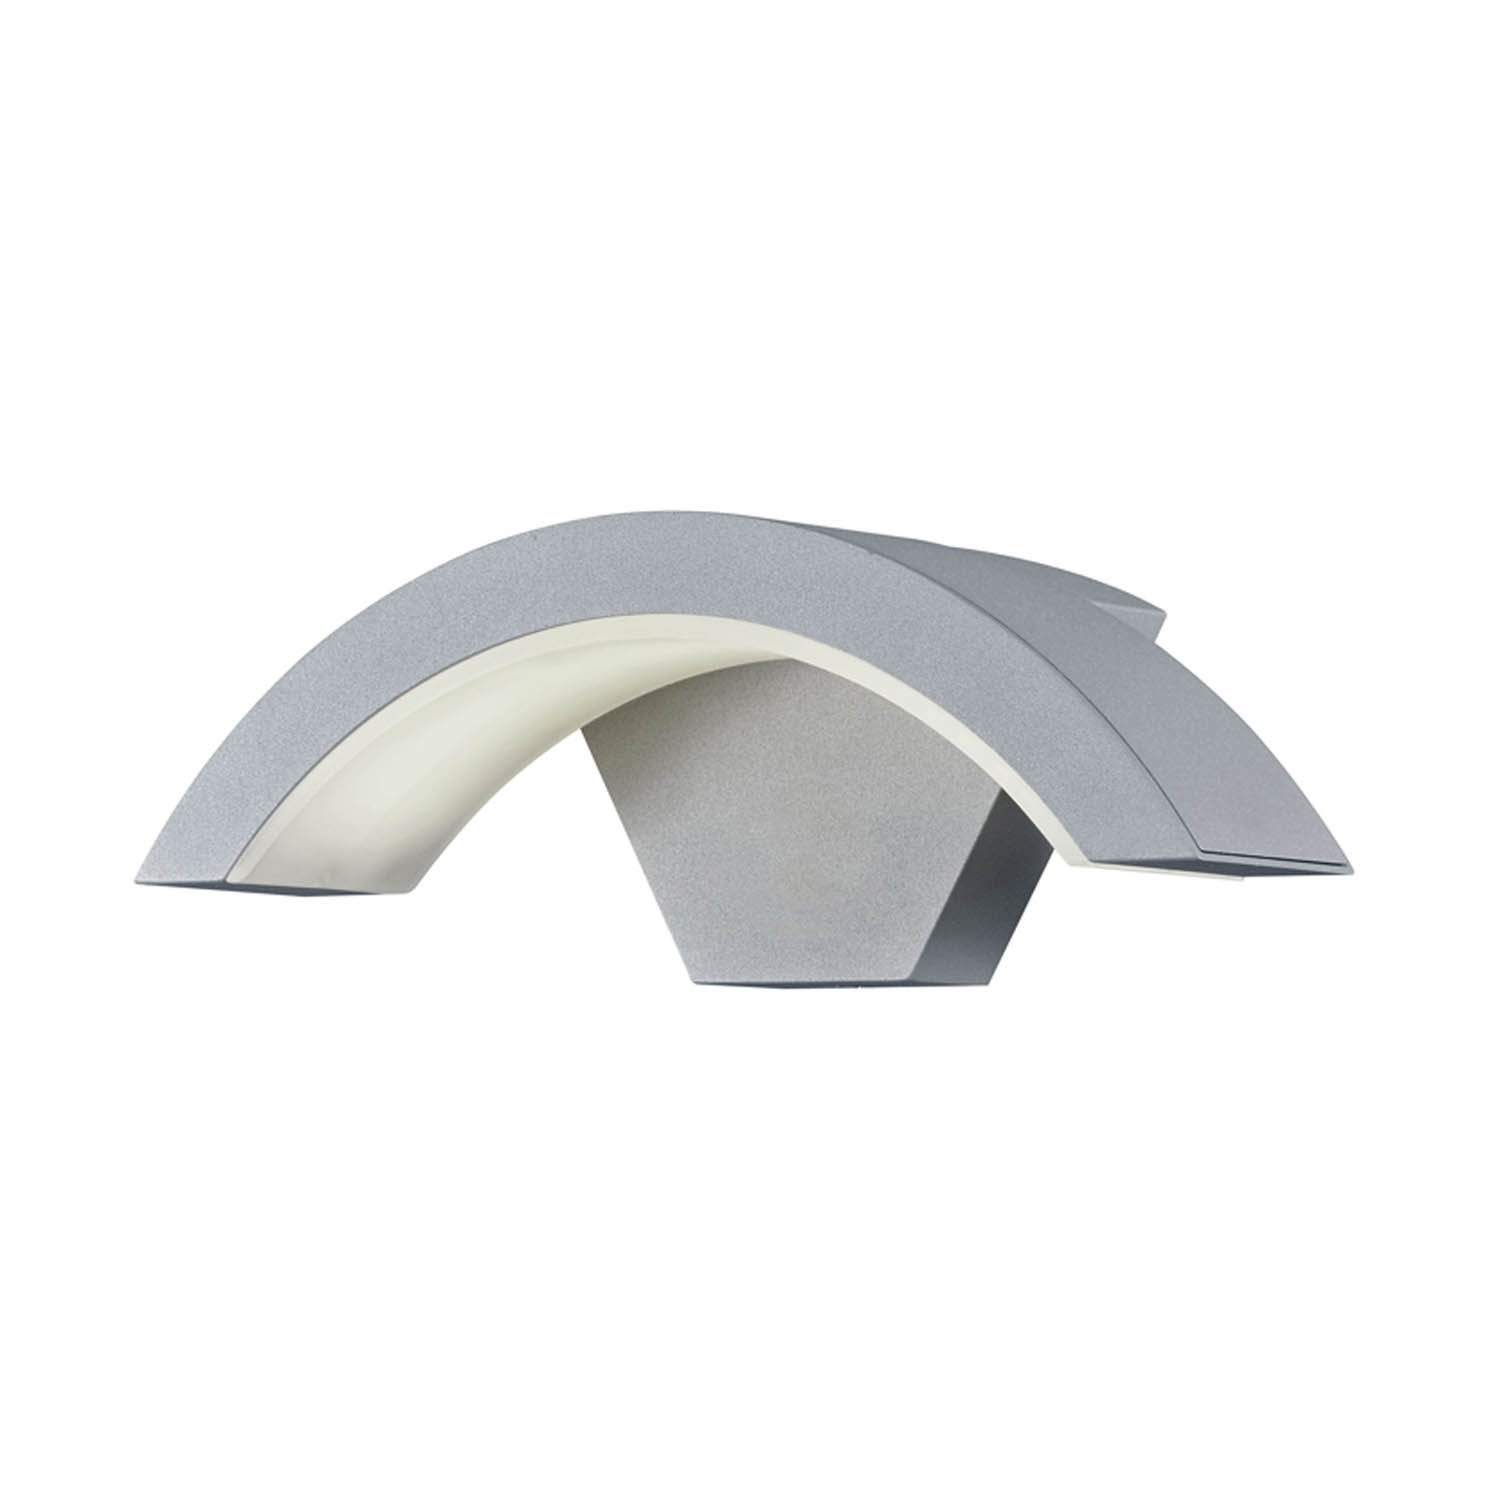 Aplique de exterior led oscar plata apliques led exterior for Apliques de pared exterior led